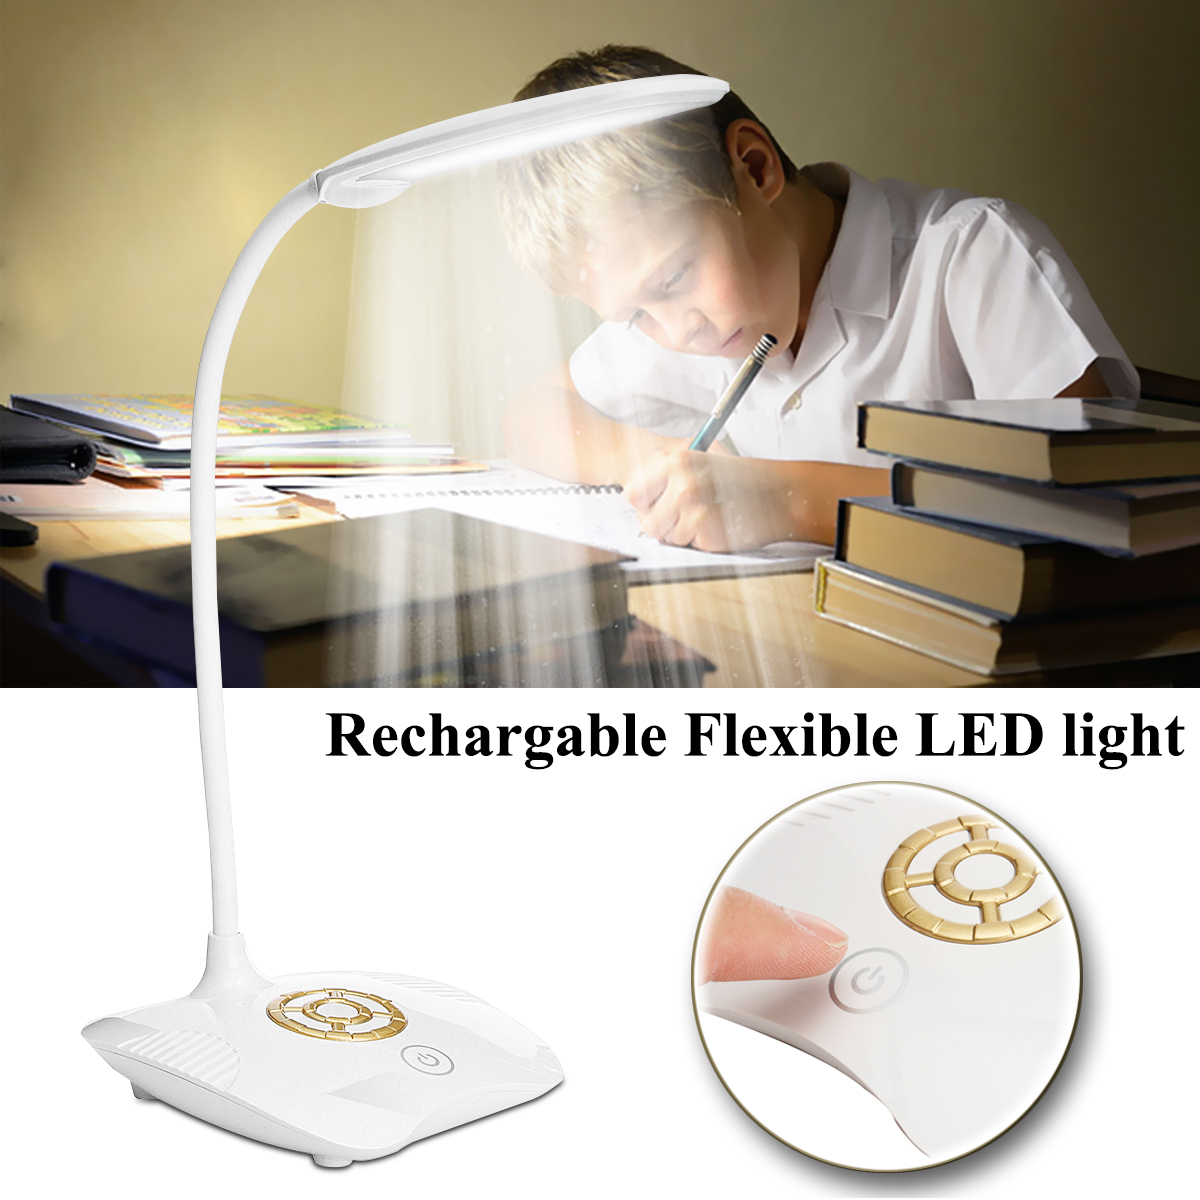 18x Blubs 3 Brightness Flexible Rechargeable Book Lamp Dimmable USB LED Night Light Bedside Desktop Reading Desk Lamp Portable icoco usb rechargeable led magnetic foldable wooden book lamp night light desk lamp for christmas gift home decor s m l size